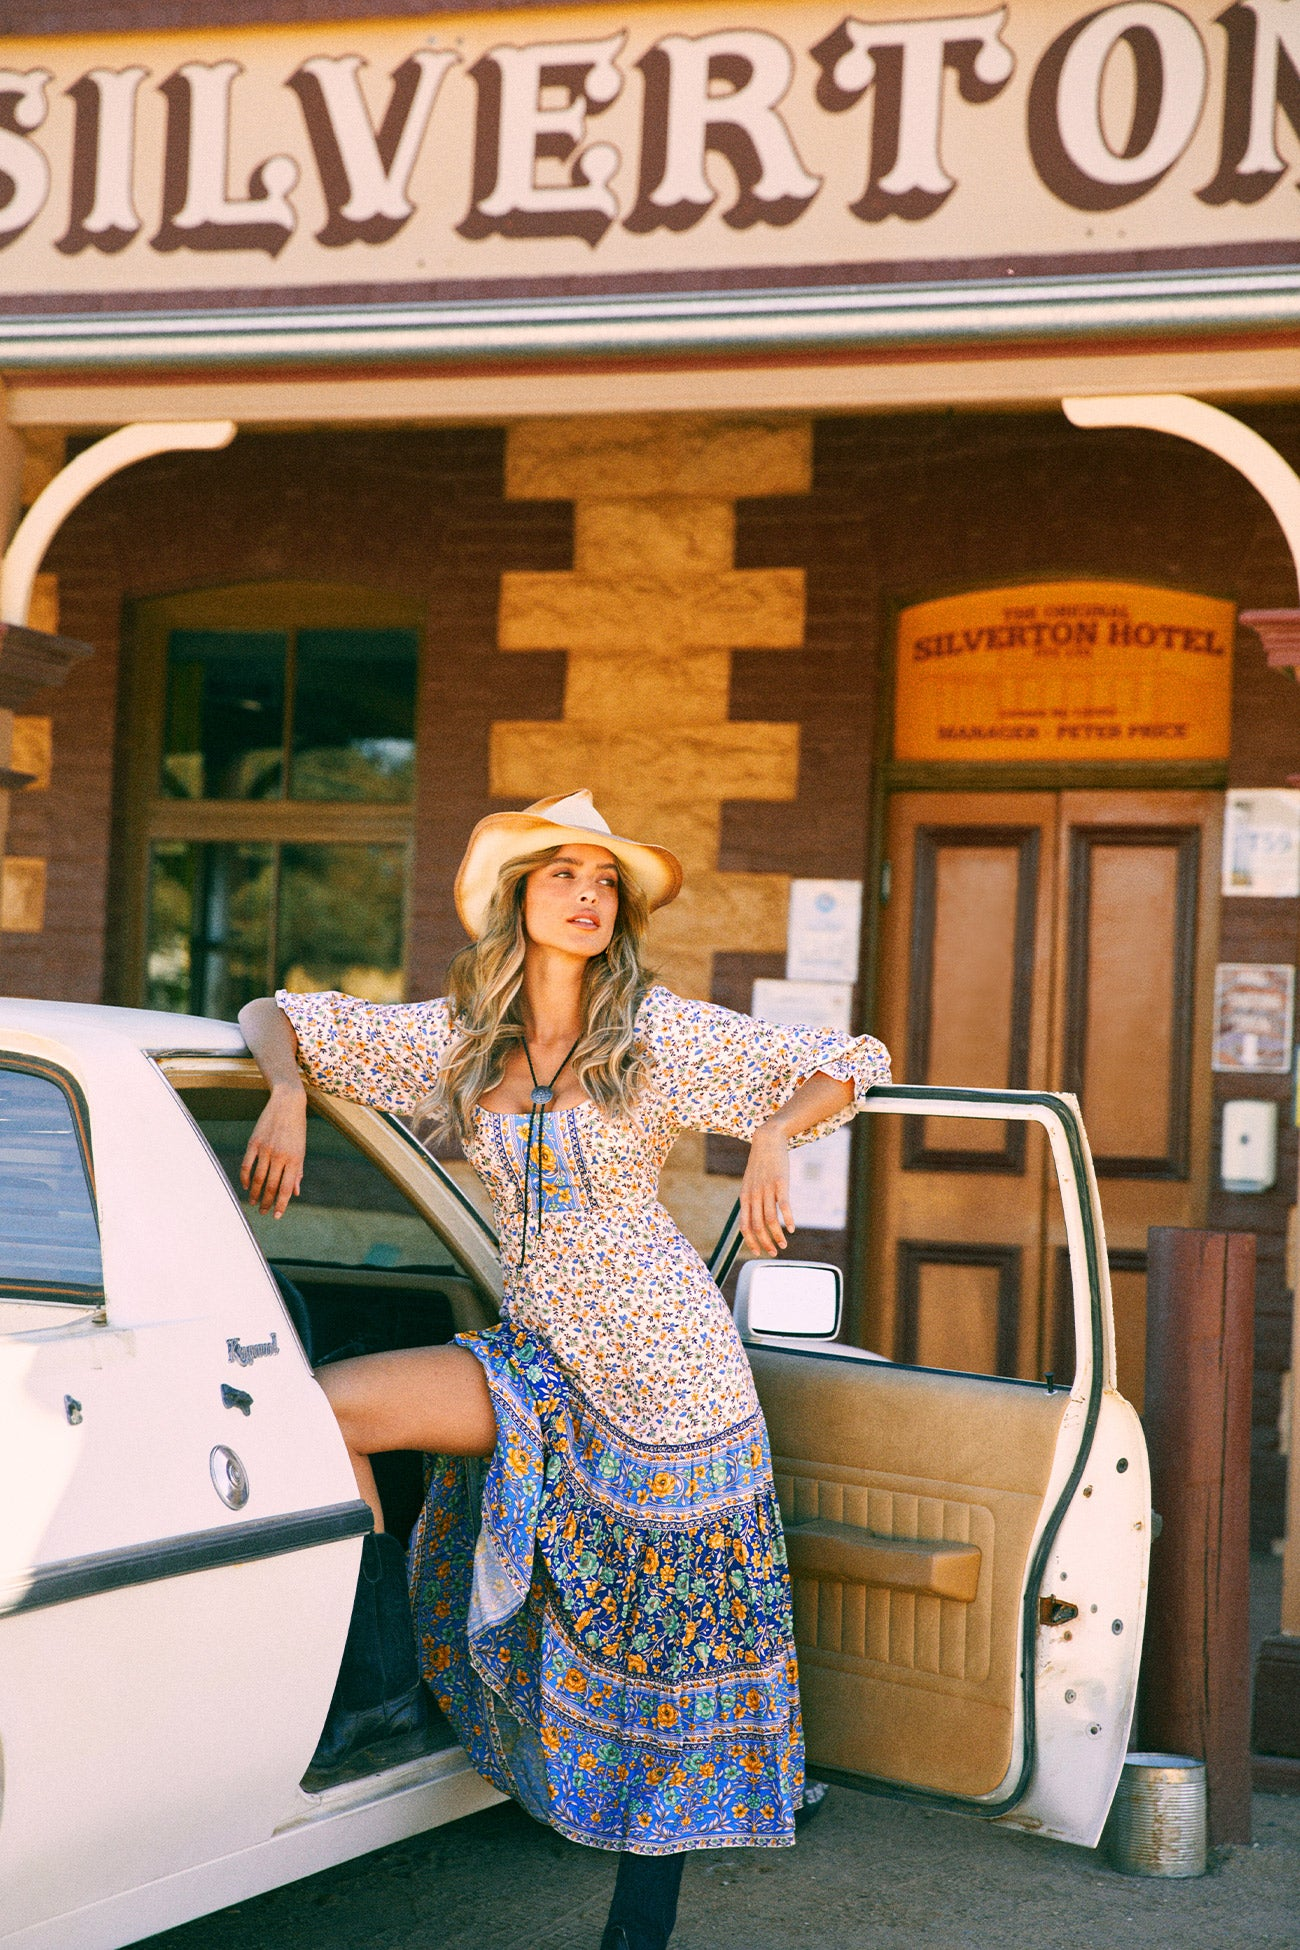 Our Nomada campaign was shot at the Silverton Hotel near Broken Hill